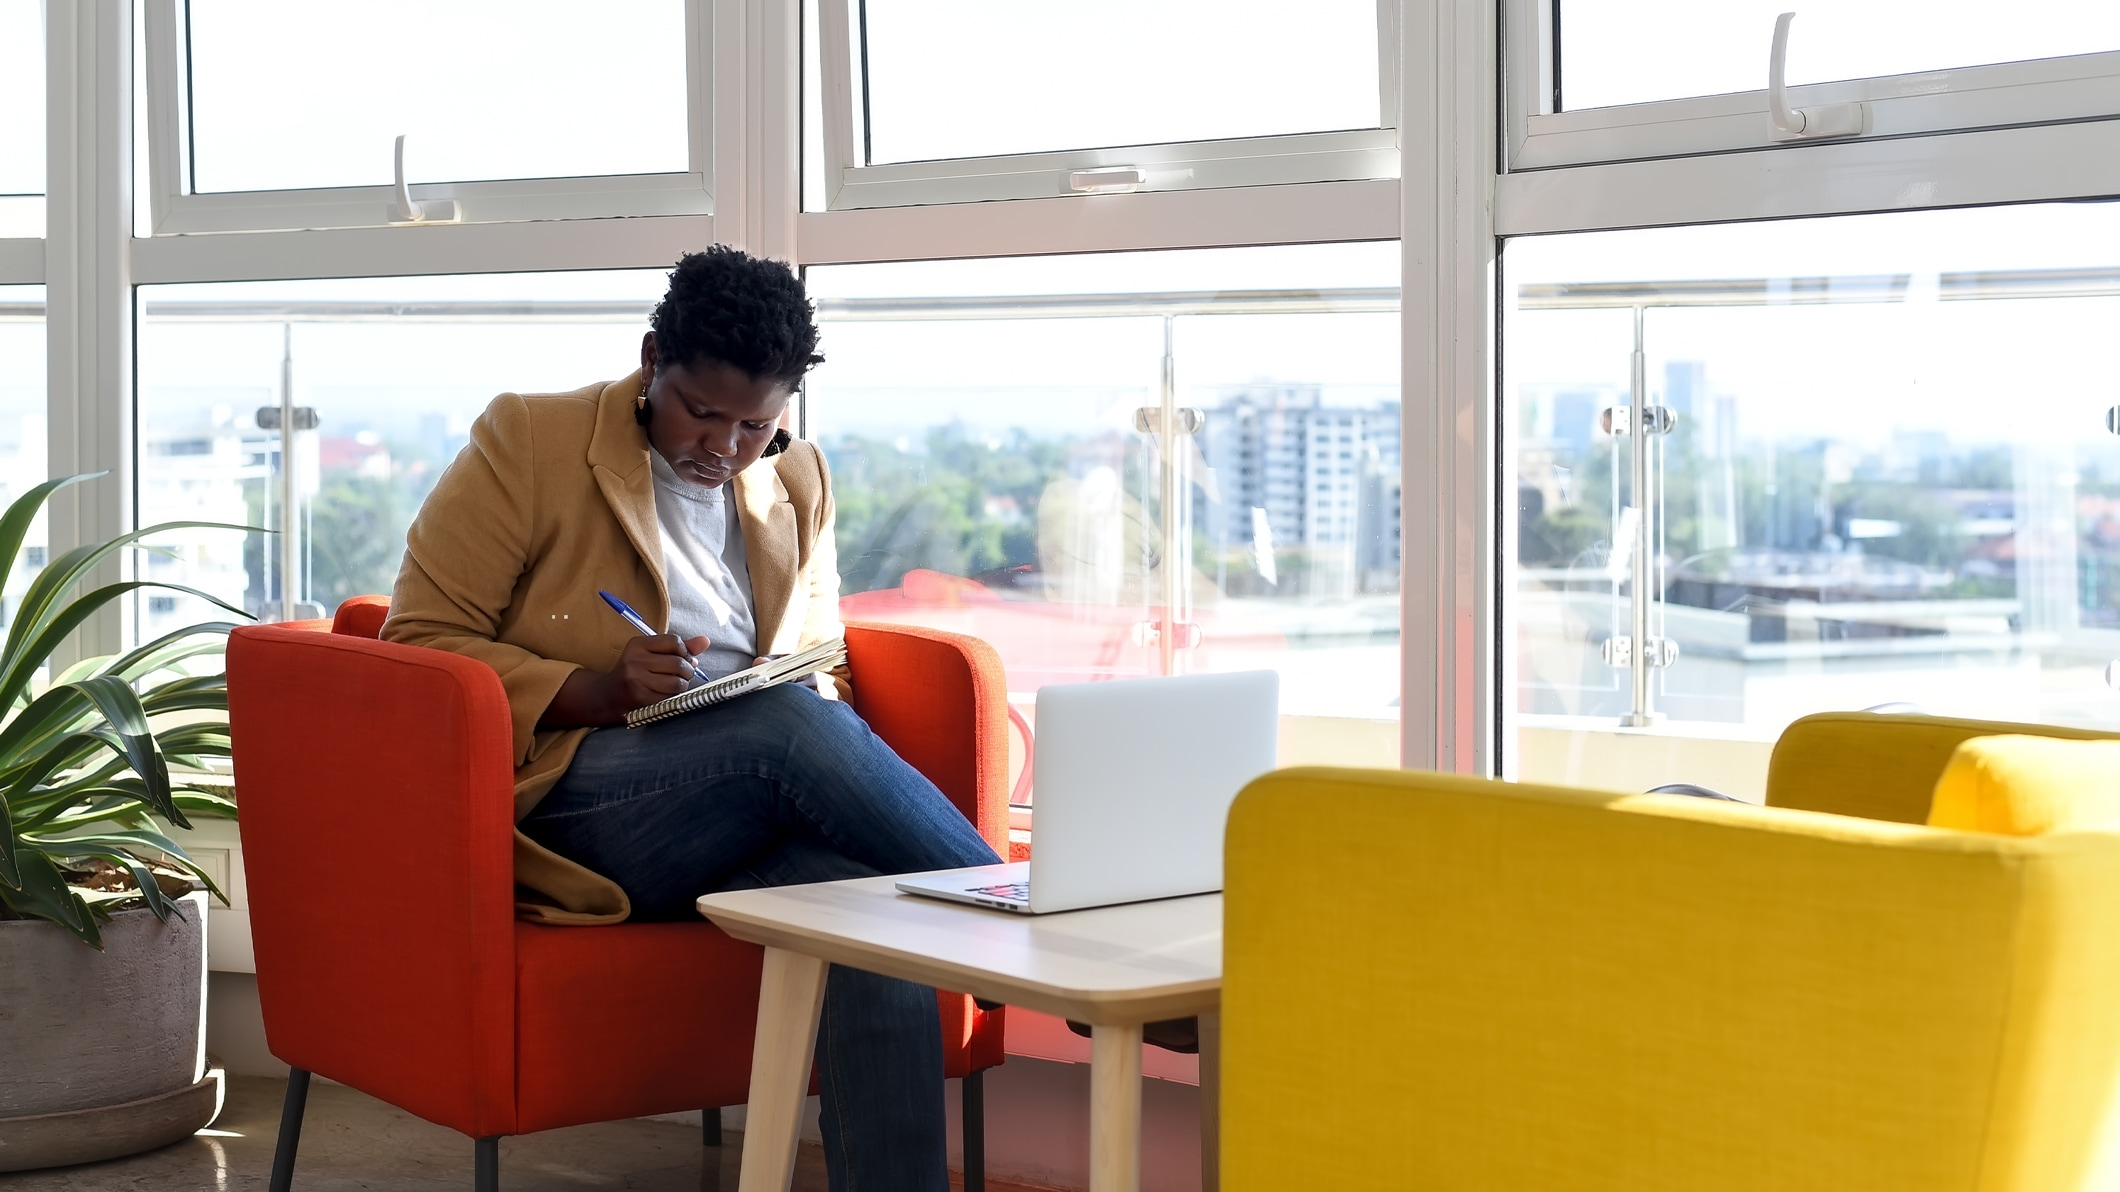 A woman takes notes while sitting with her laptop in a modern office.